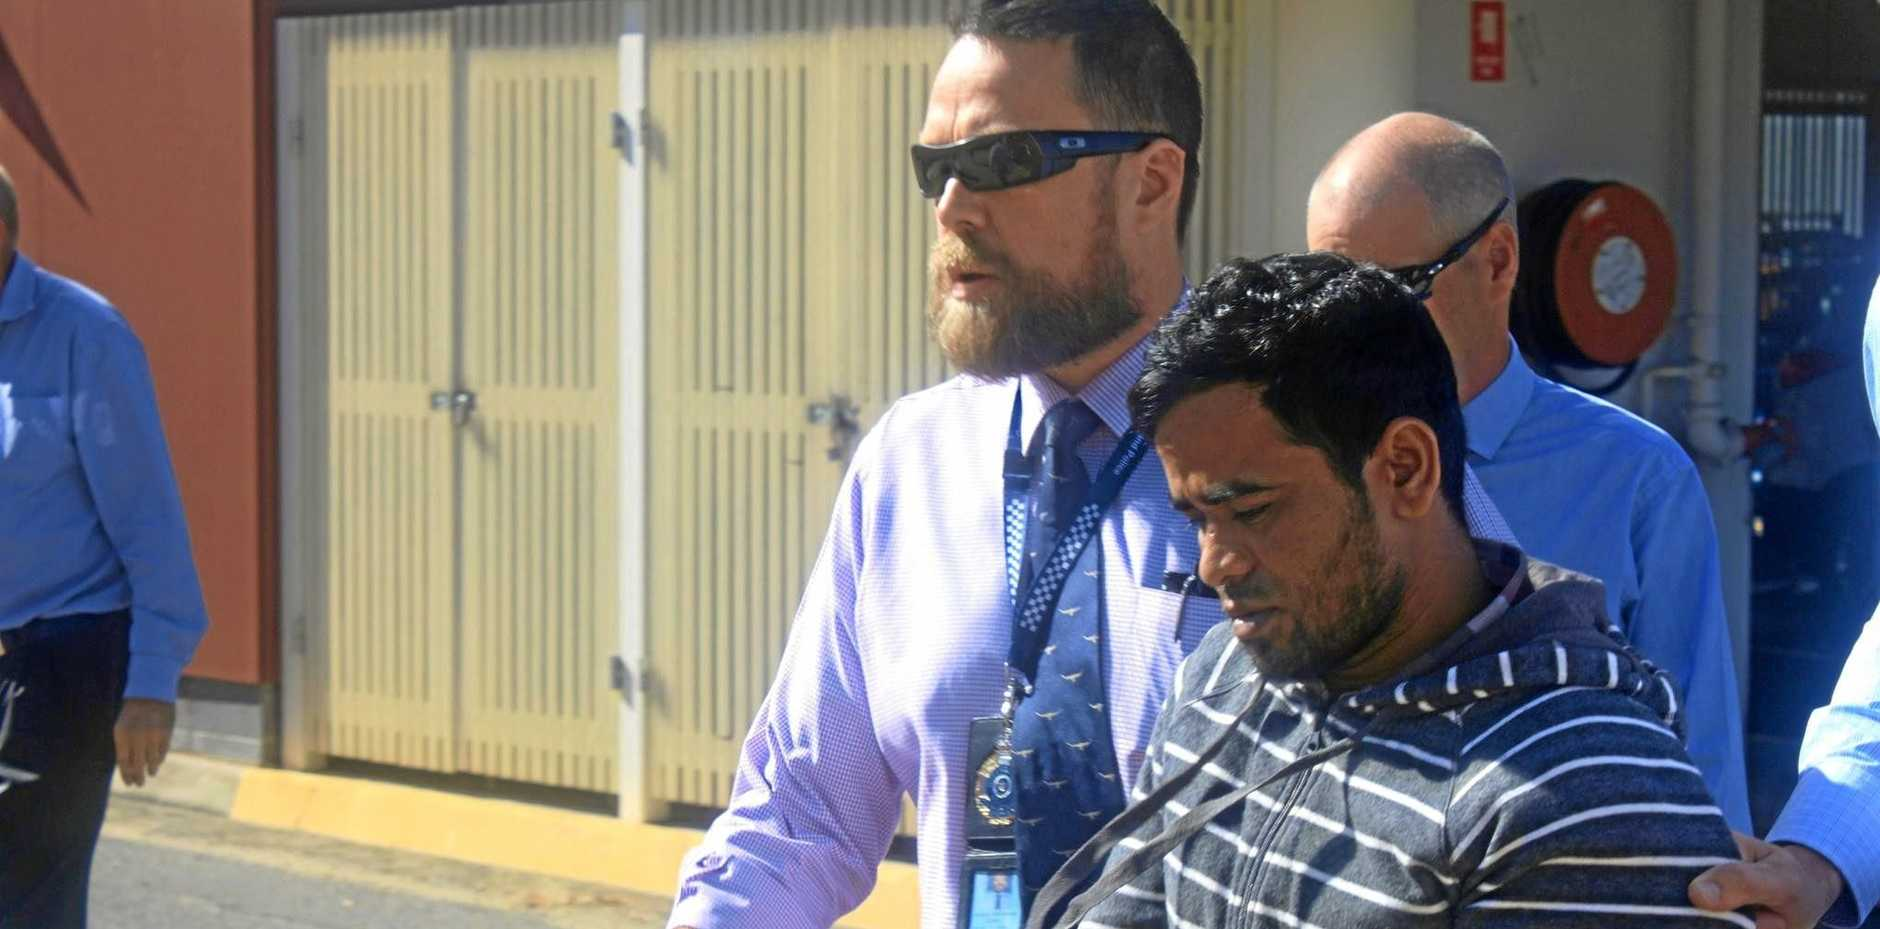 MURDER CHARGE: Mohammed Khan when he was arrested in relation to the death of Syeid Alam escorted from the Rockhampton Police Station to watch house at the Rockhampton Courthouse.